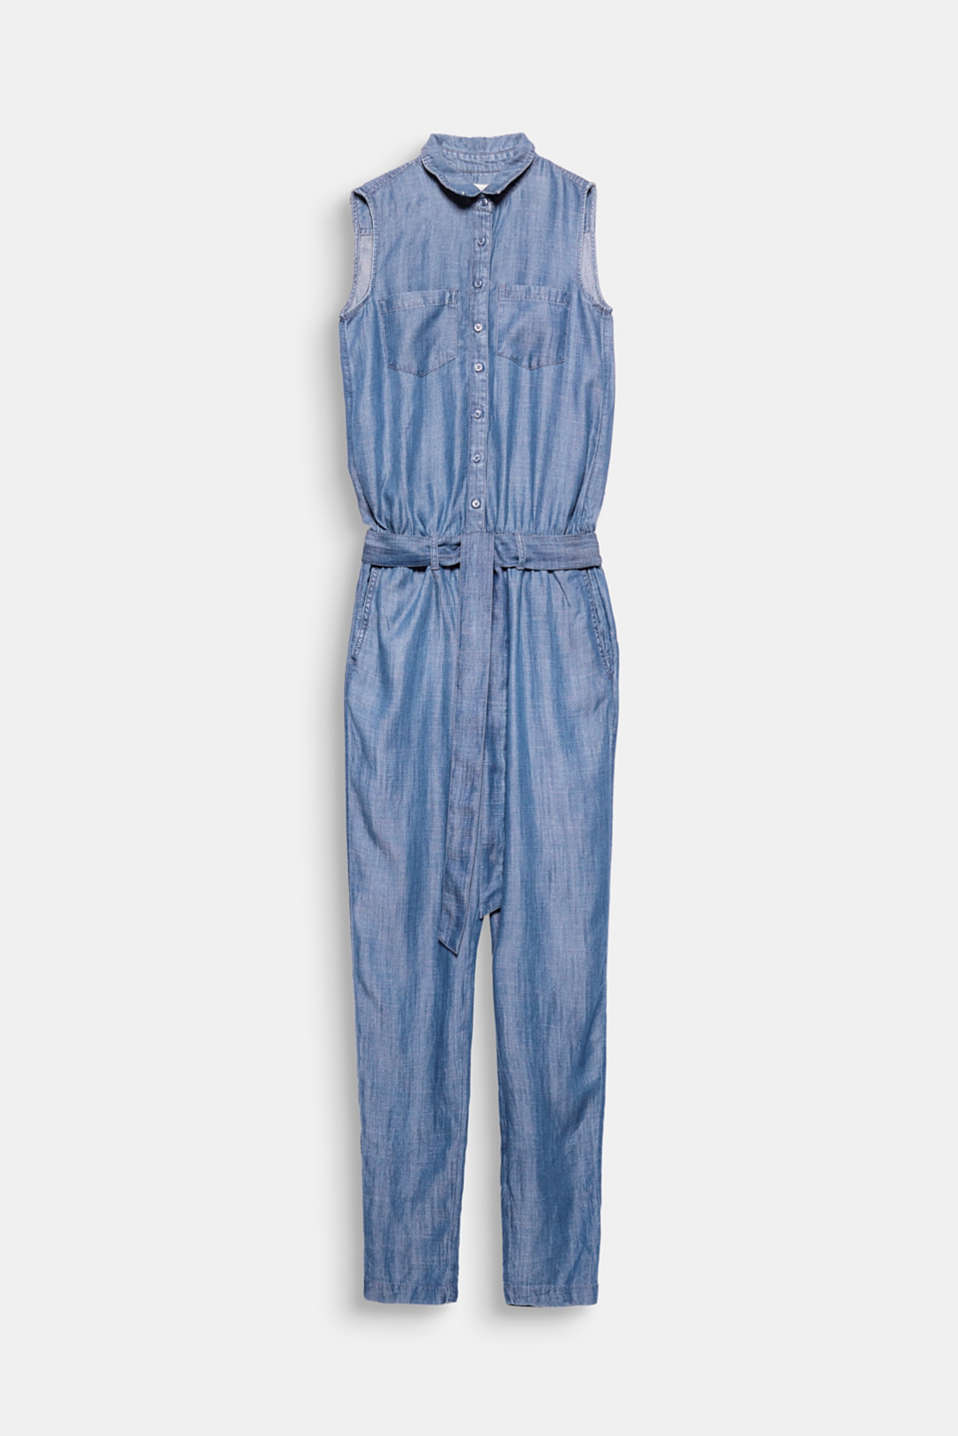 A jumpsuit can be this casual: when it's finished in flowing lyocell with a denim finish and decked out with a shirt collar and tie-around belt!